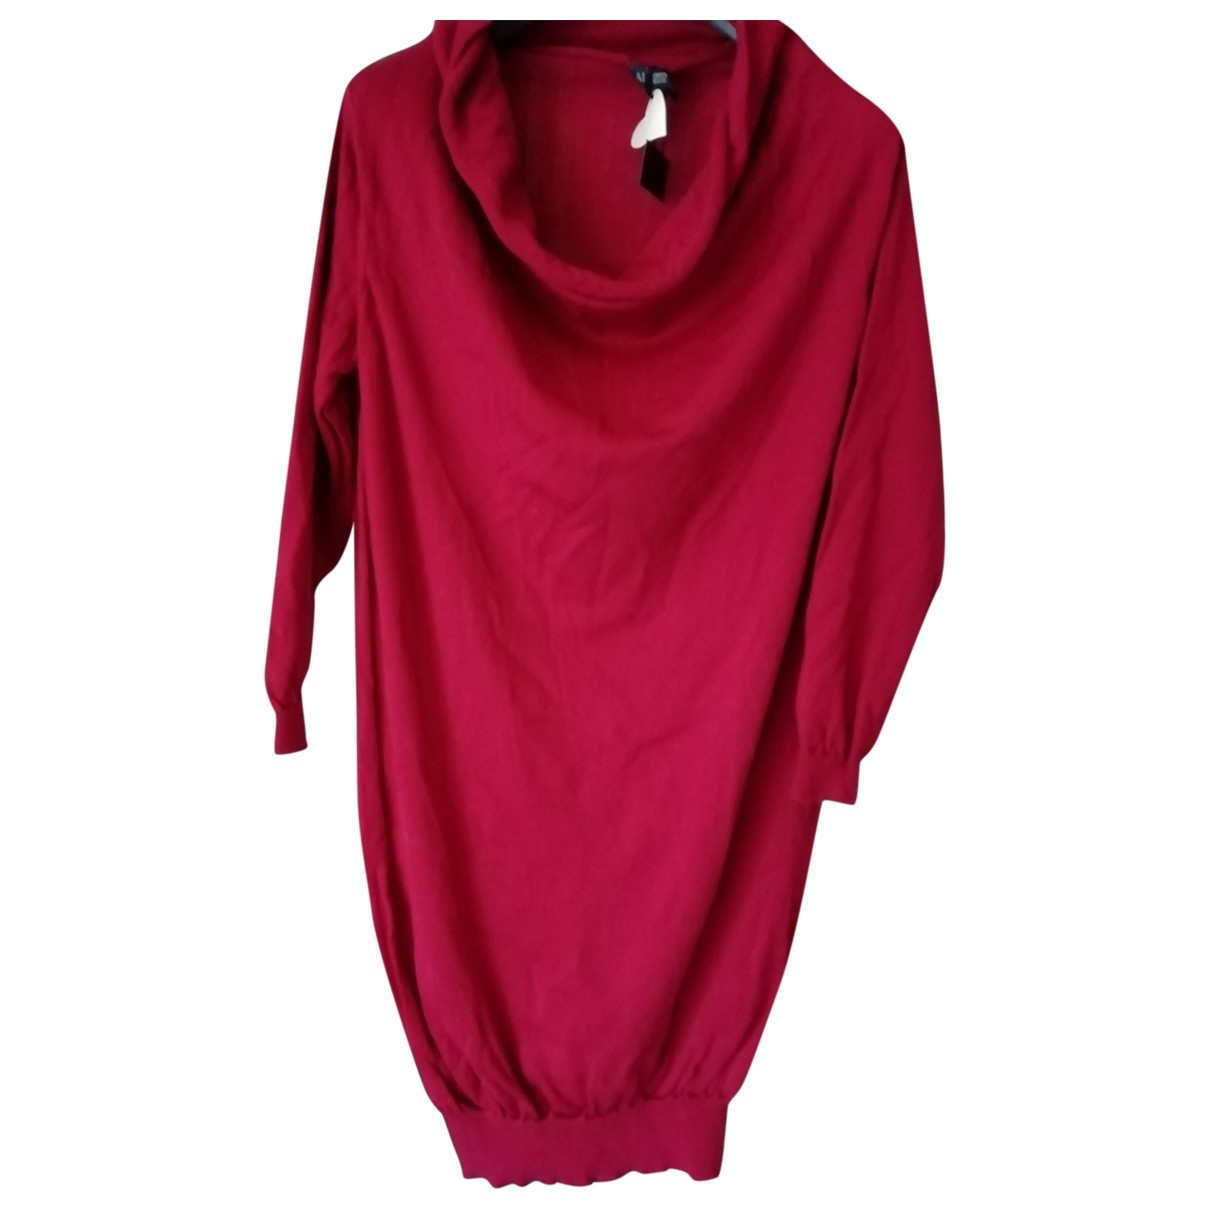 Armani Jeans \N Red Cotton dress for Women L International